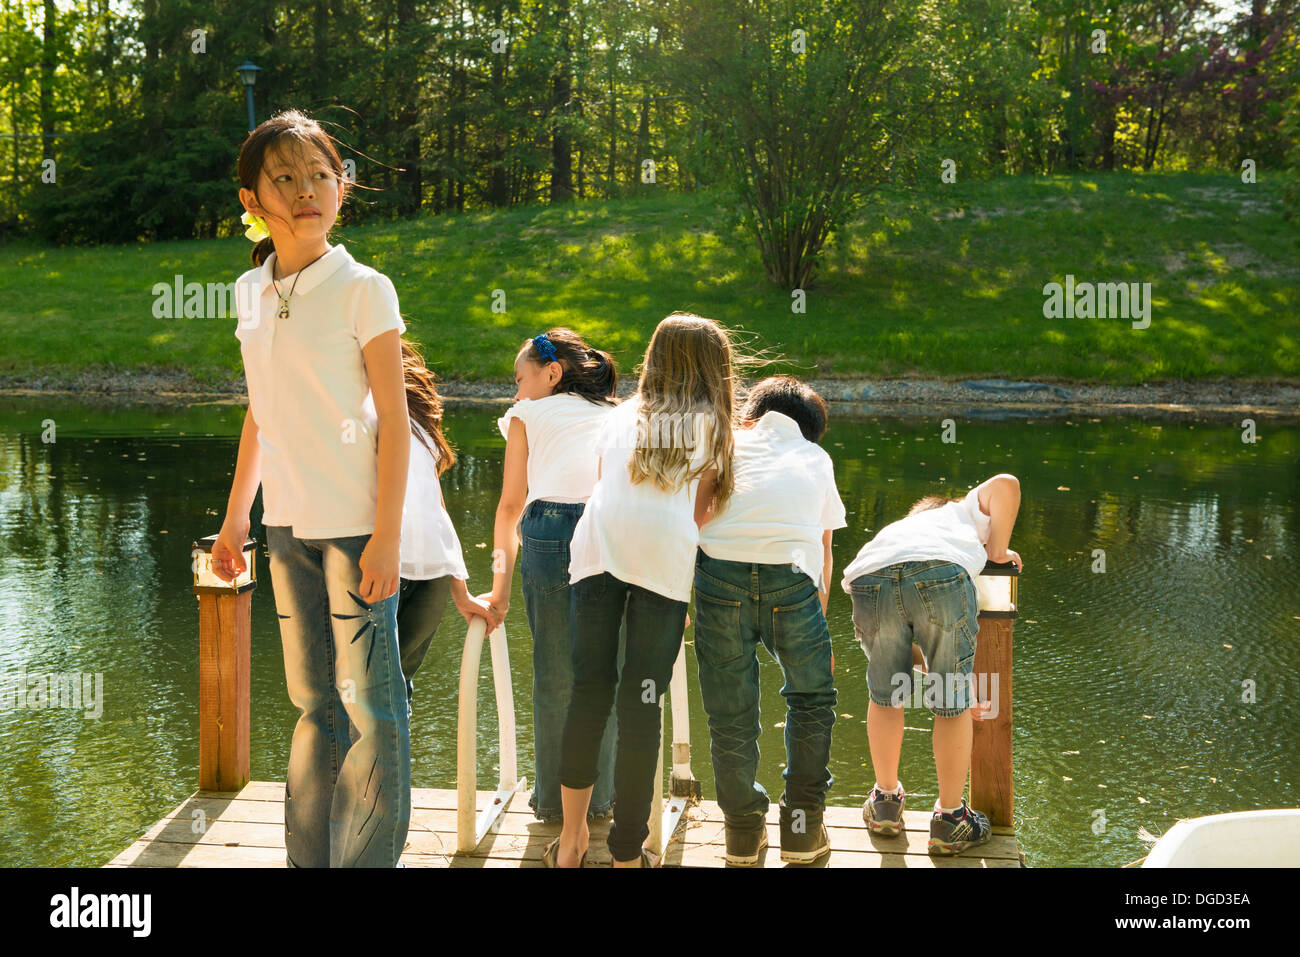 Children on jetty by lake - Stock Image